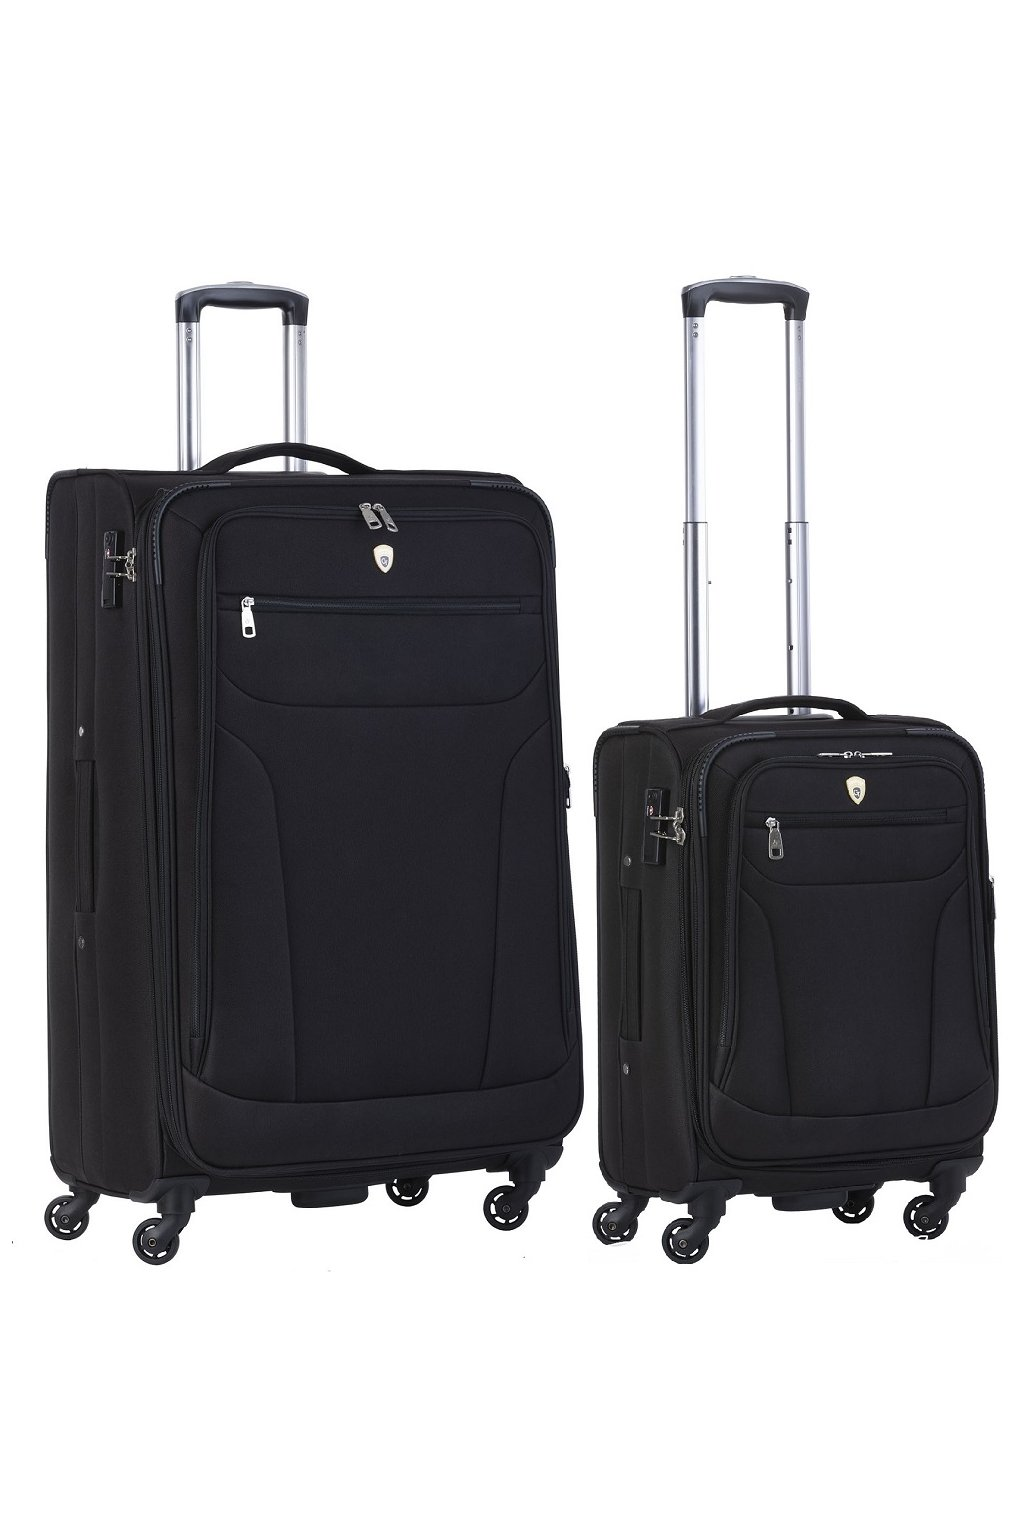 kufrland carryon cambridge black (12)